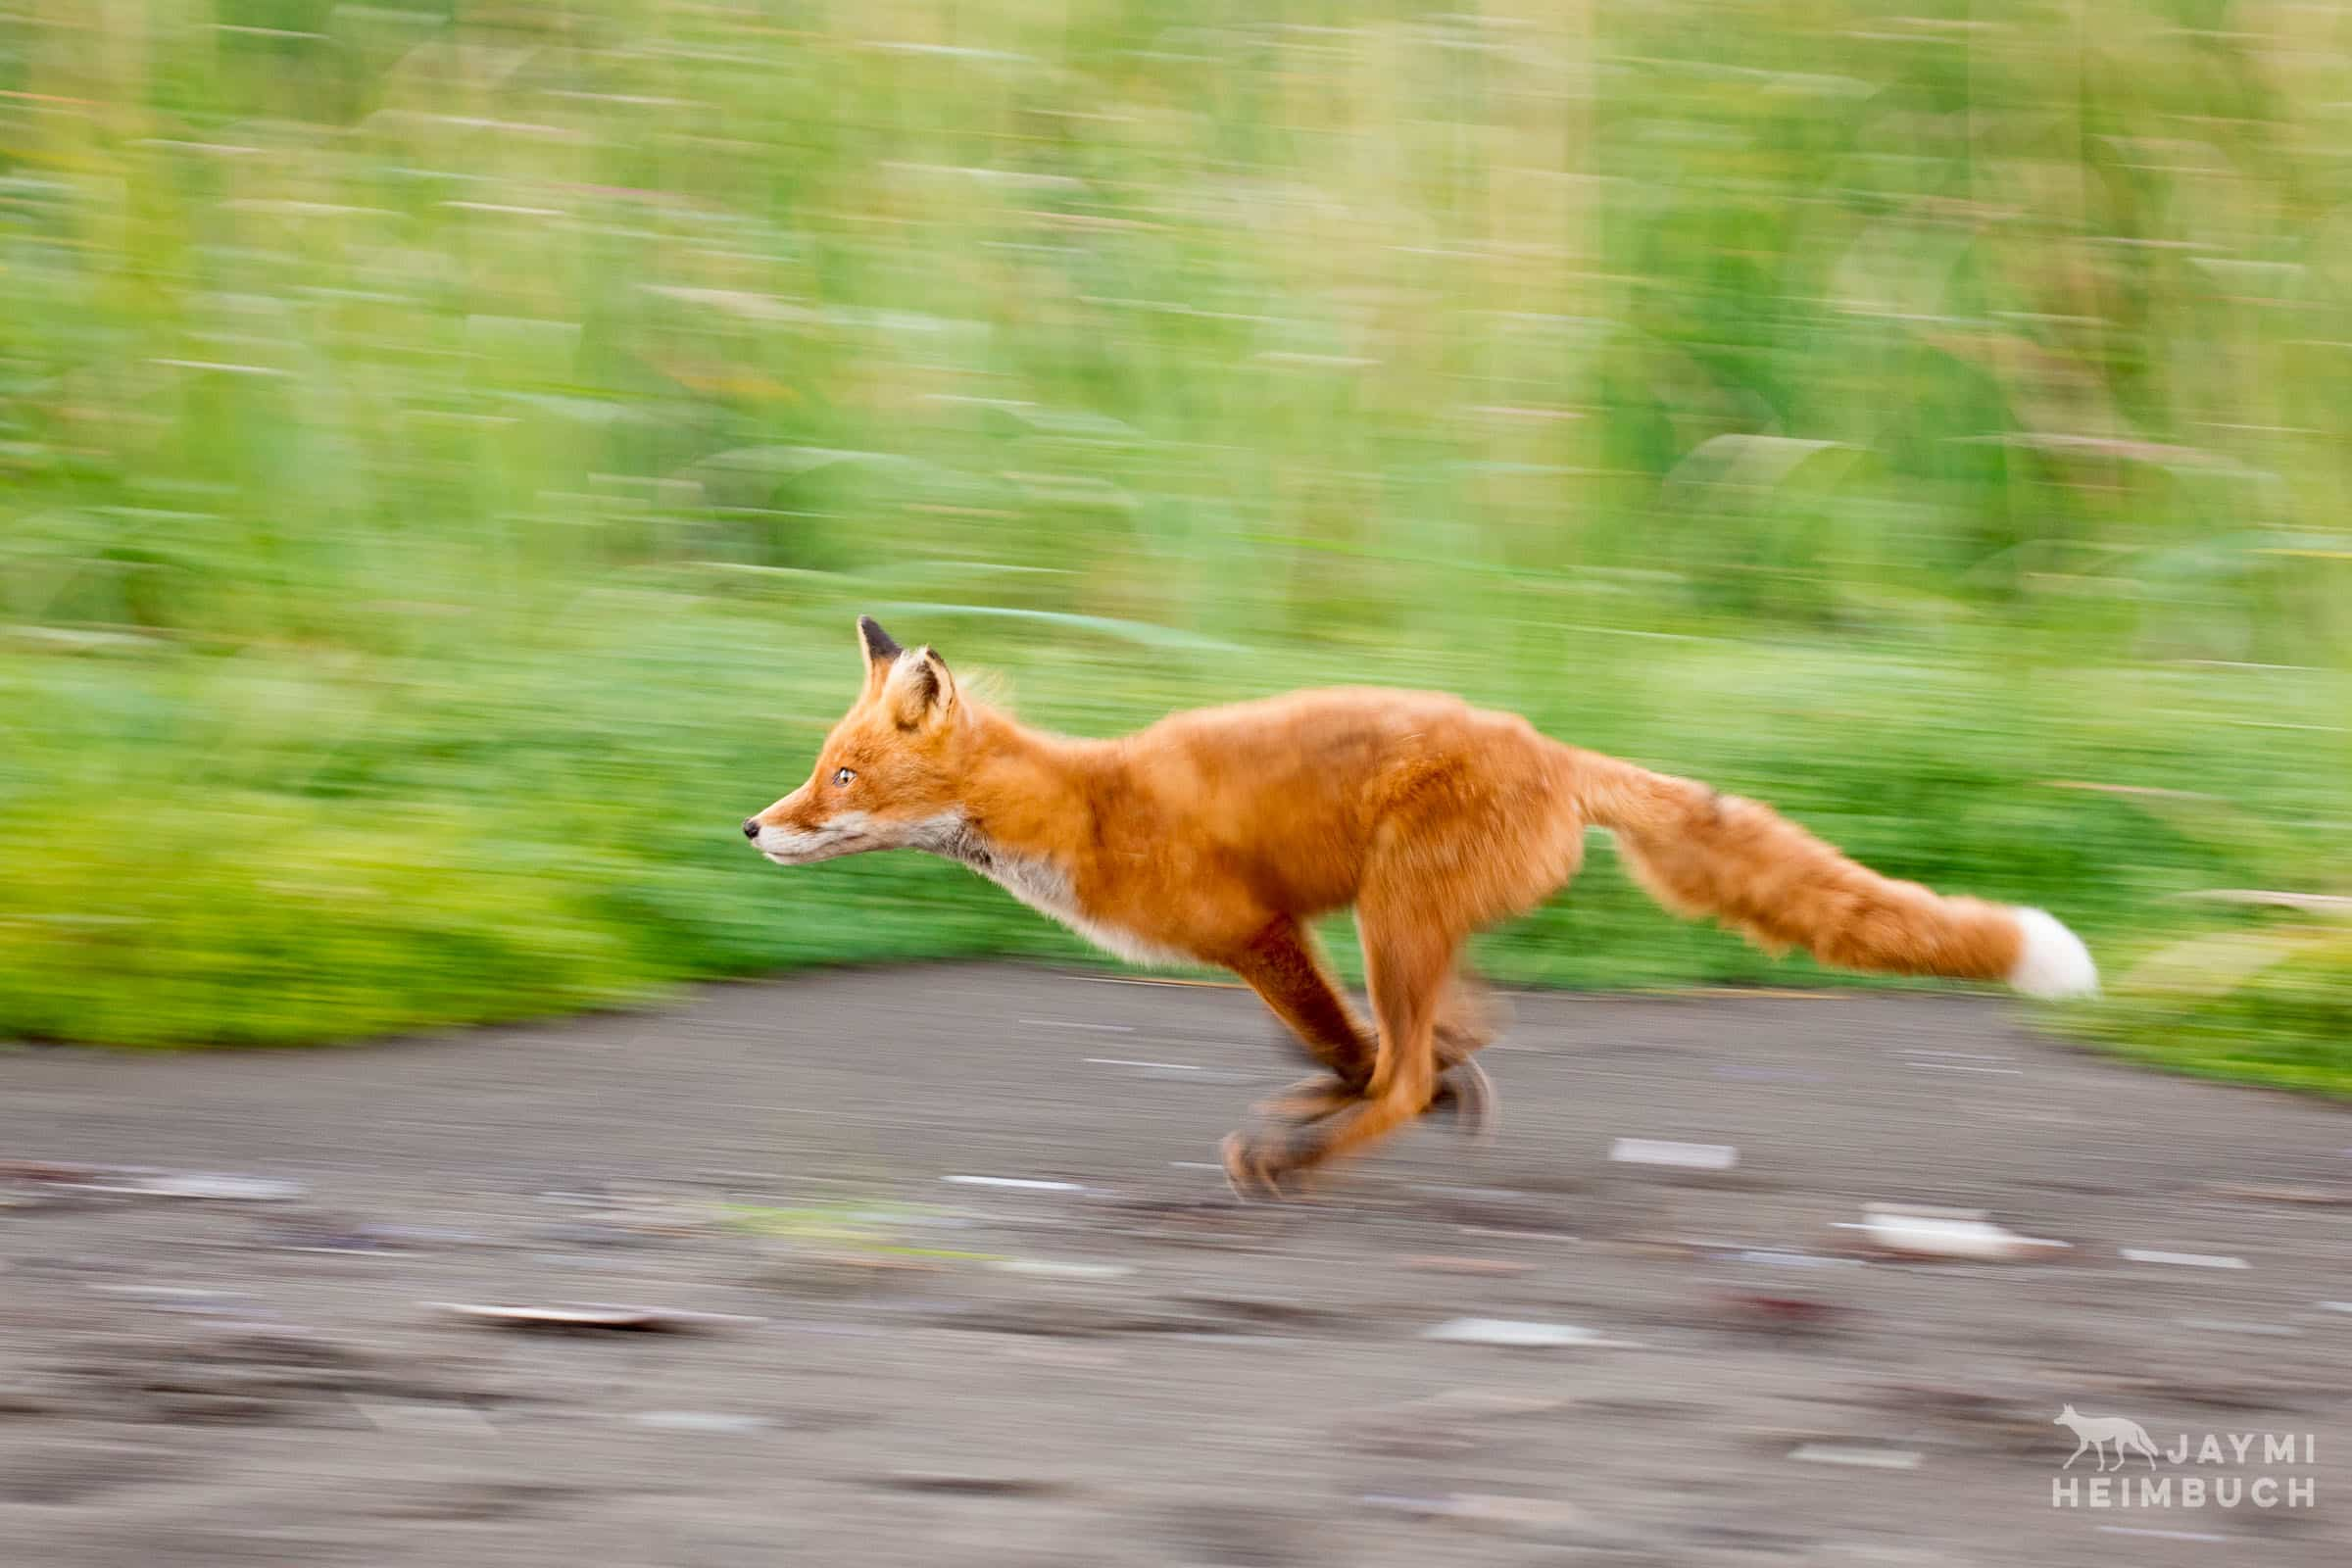 A red fox running along the edge of a grassy field is captured with a panning blur.